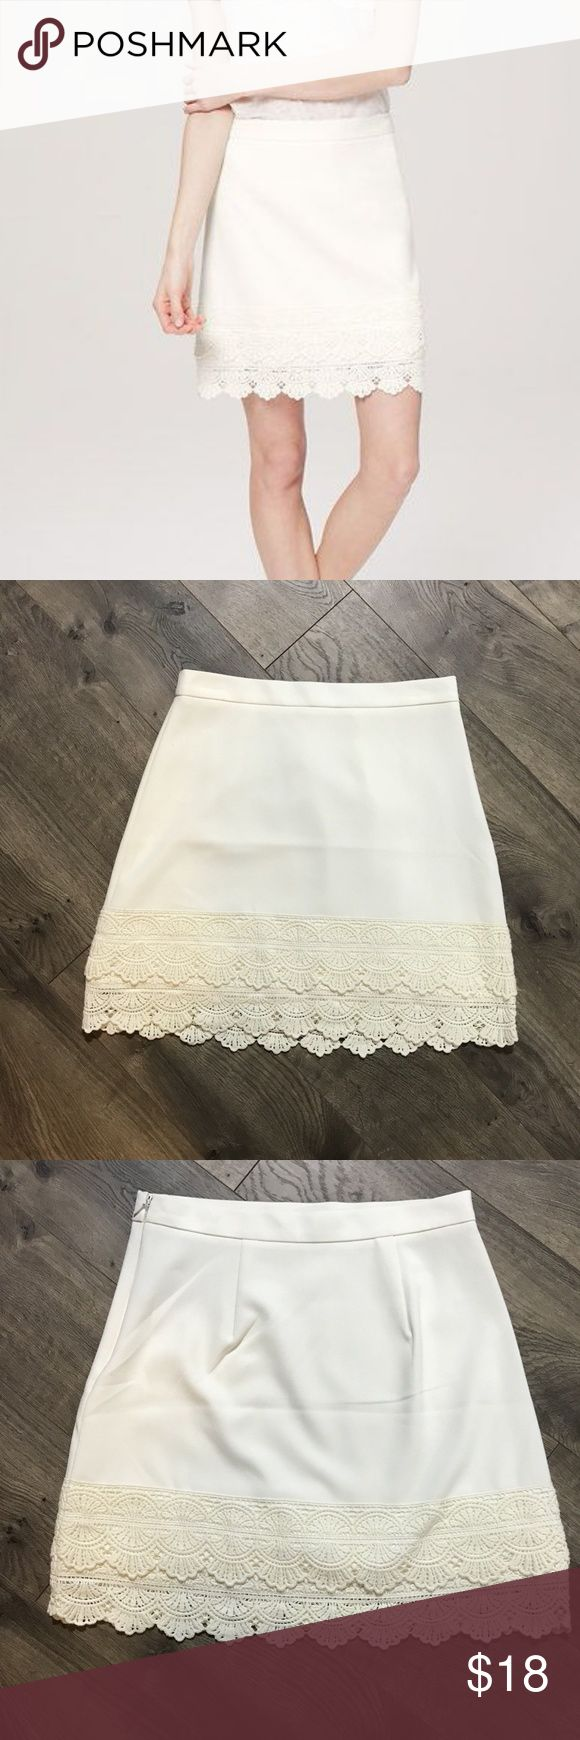 LOFT Double Tiered Lace Hem White Skirt Sz 2 Ann Taylor LOFT Double Tiered Lace Hem Skirt, Size 2, whisper white  This adorable double lace scallop hem skirt is perfect for the office or even for the weekend. Excellent Condition.   Measurements: Waist: 14 Inches  Length: 17 Inches LOFT Skirts A-Line or Full